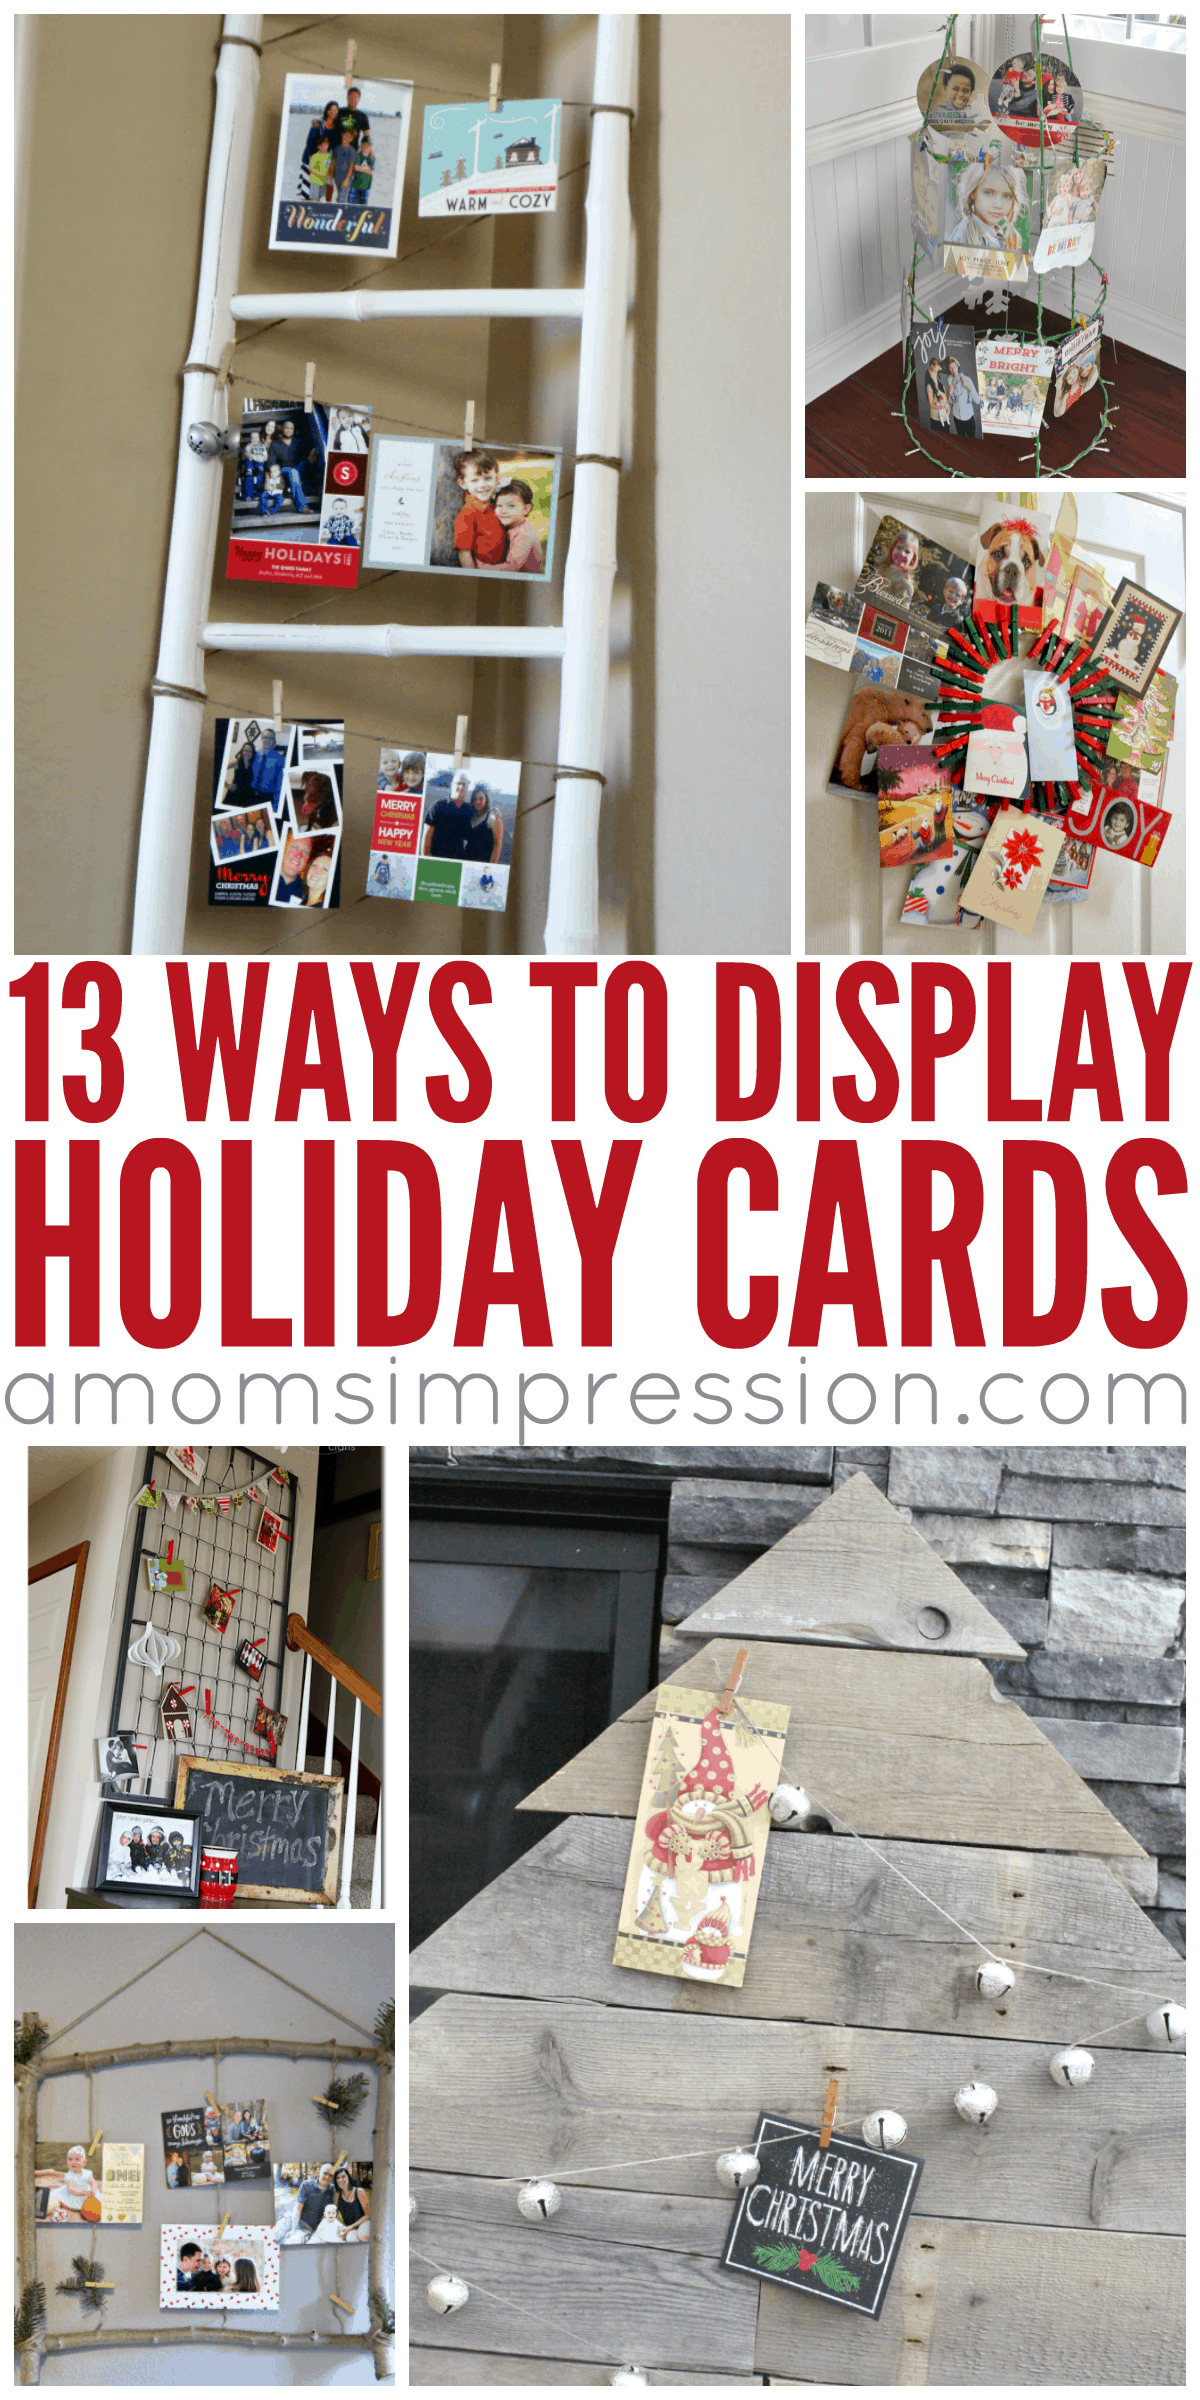 I love getting holiday cards in the mail but often I don't know how to display them. These DIY Holiday Card Display Ideas are perfect for the Christmas season. #9 is ingenious and my favorite!